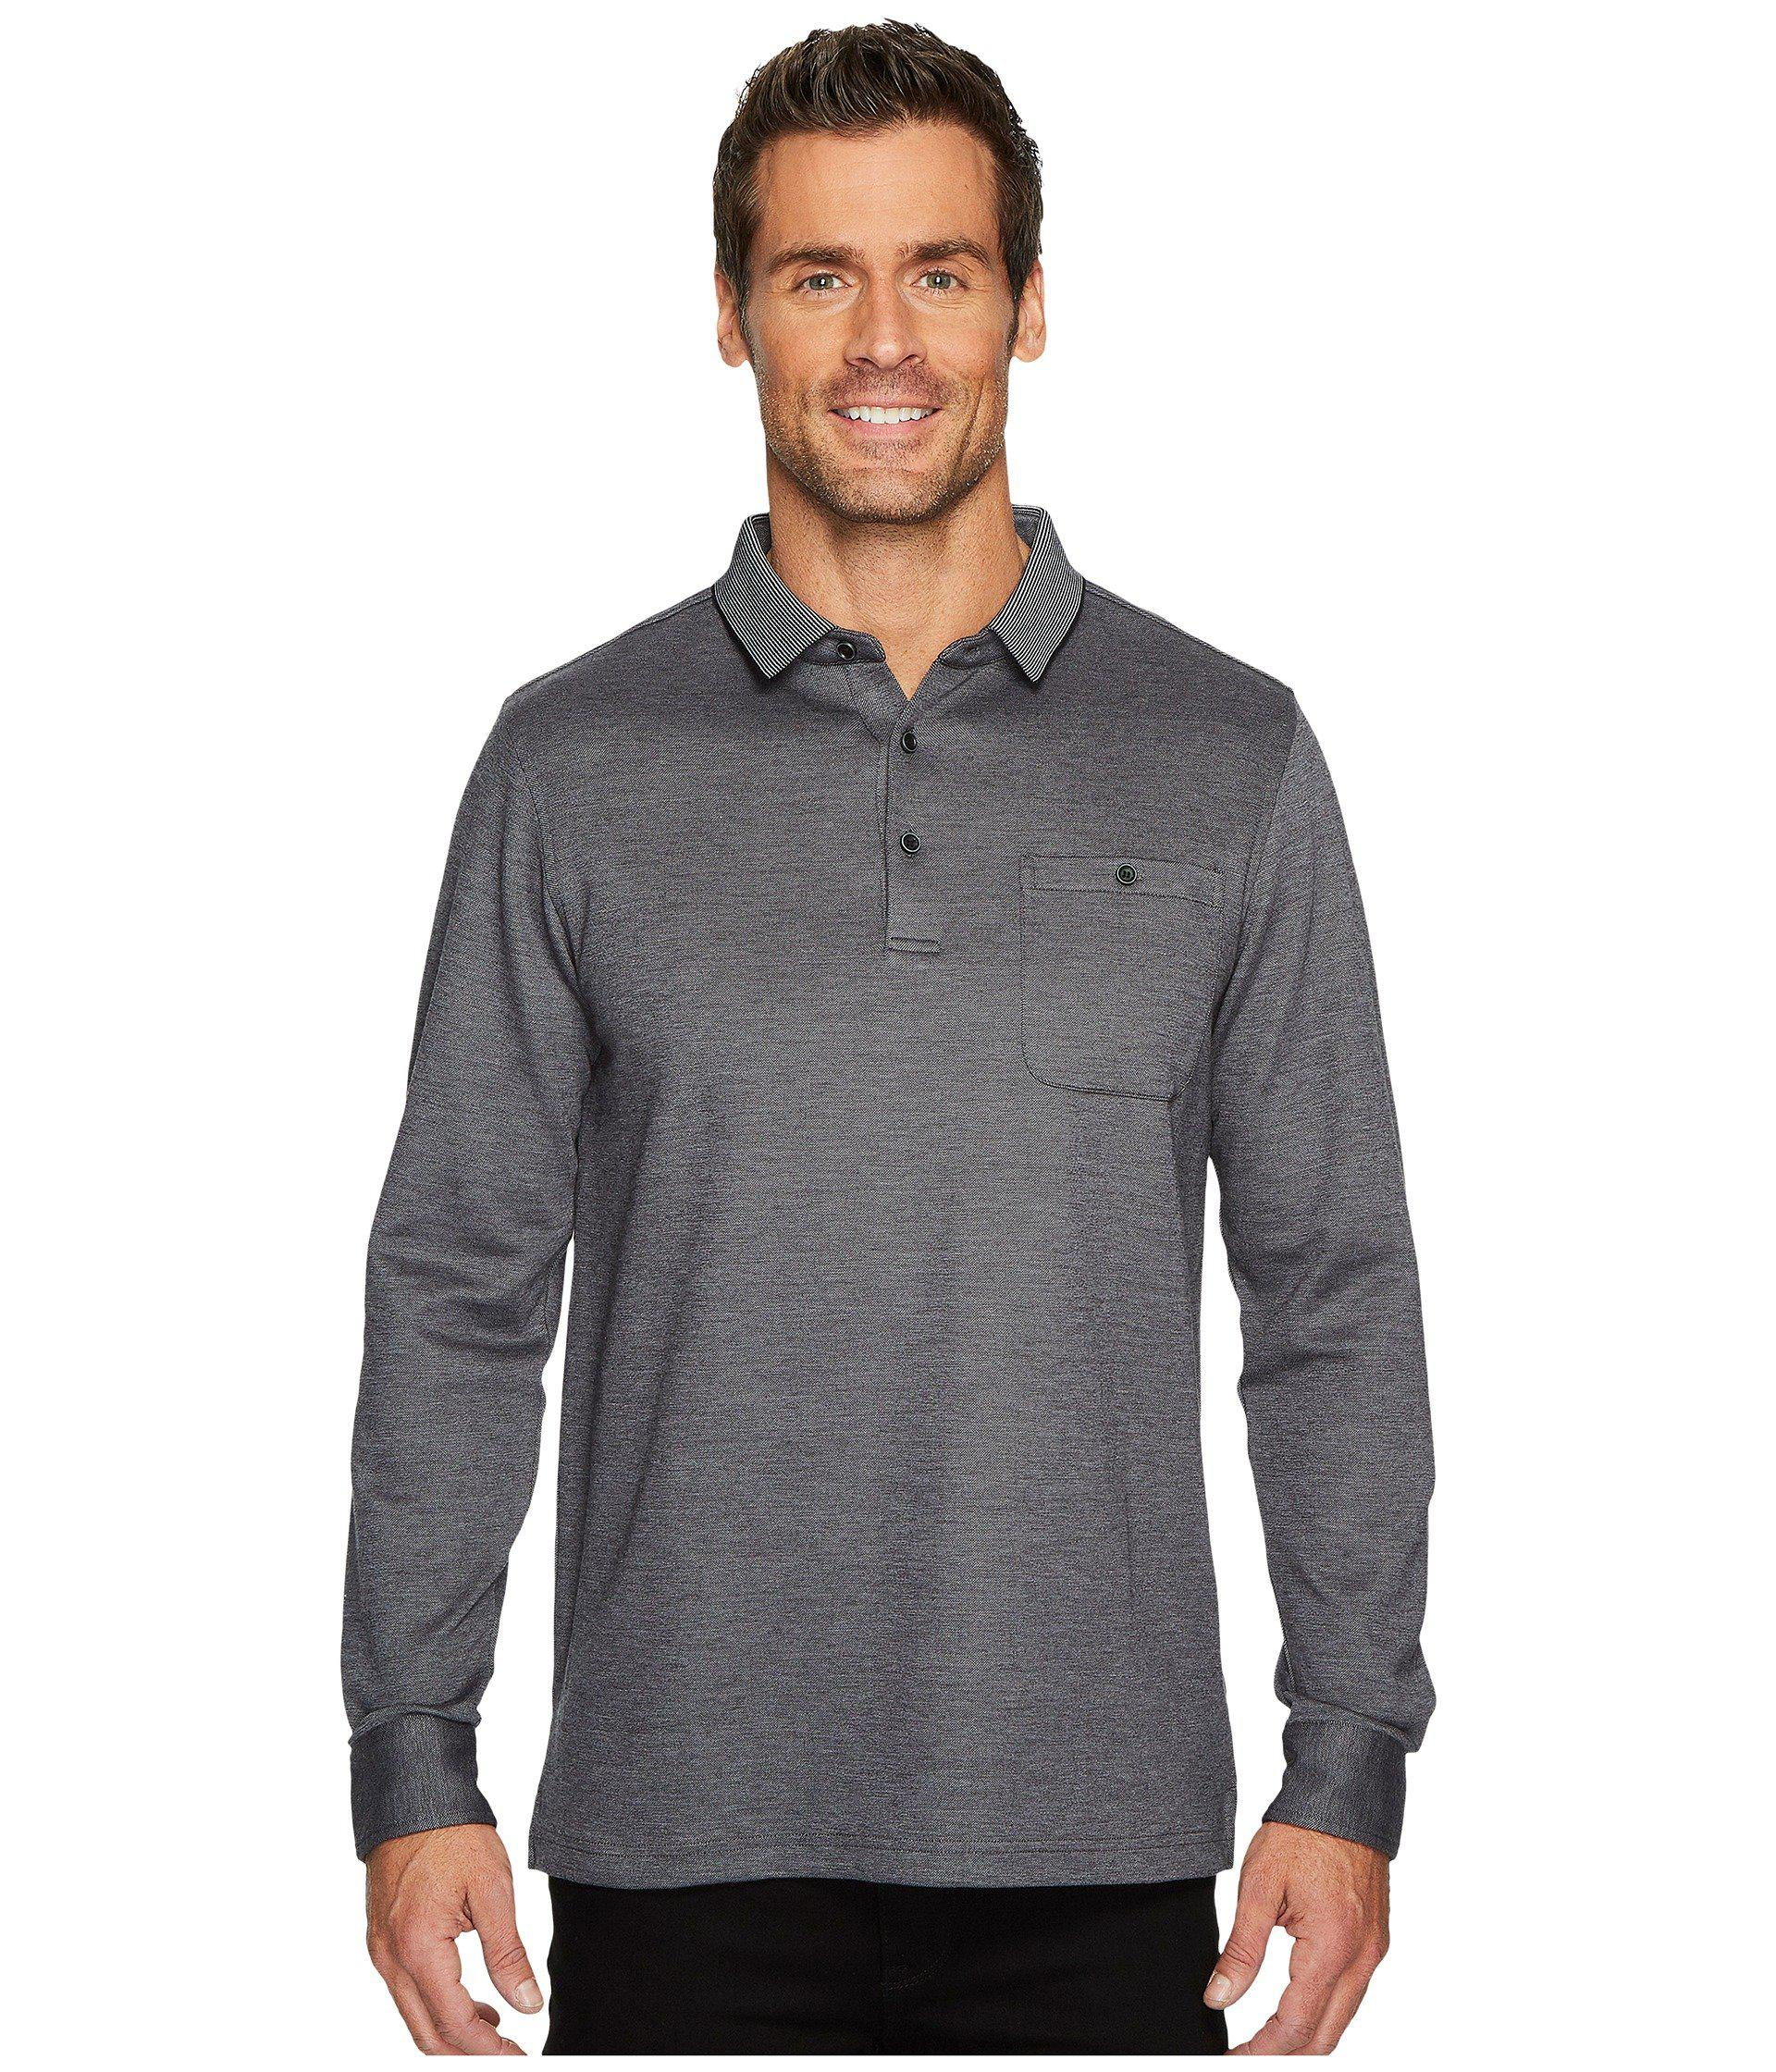 413af34e Mens Knit Polo Shirts With Pocket - Cotswold Hire